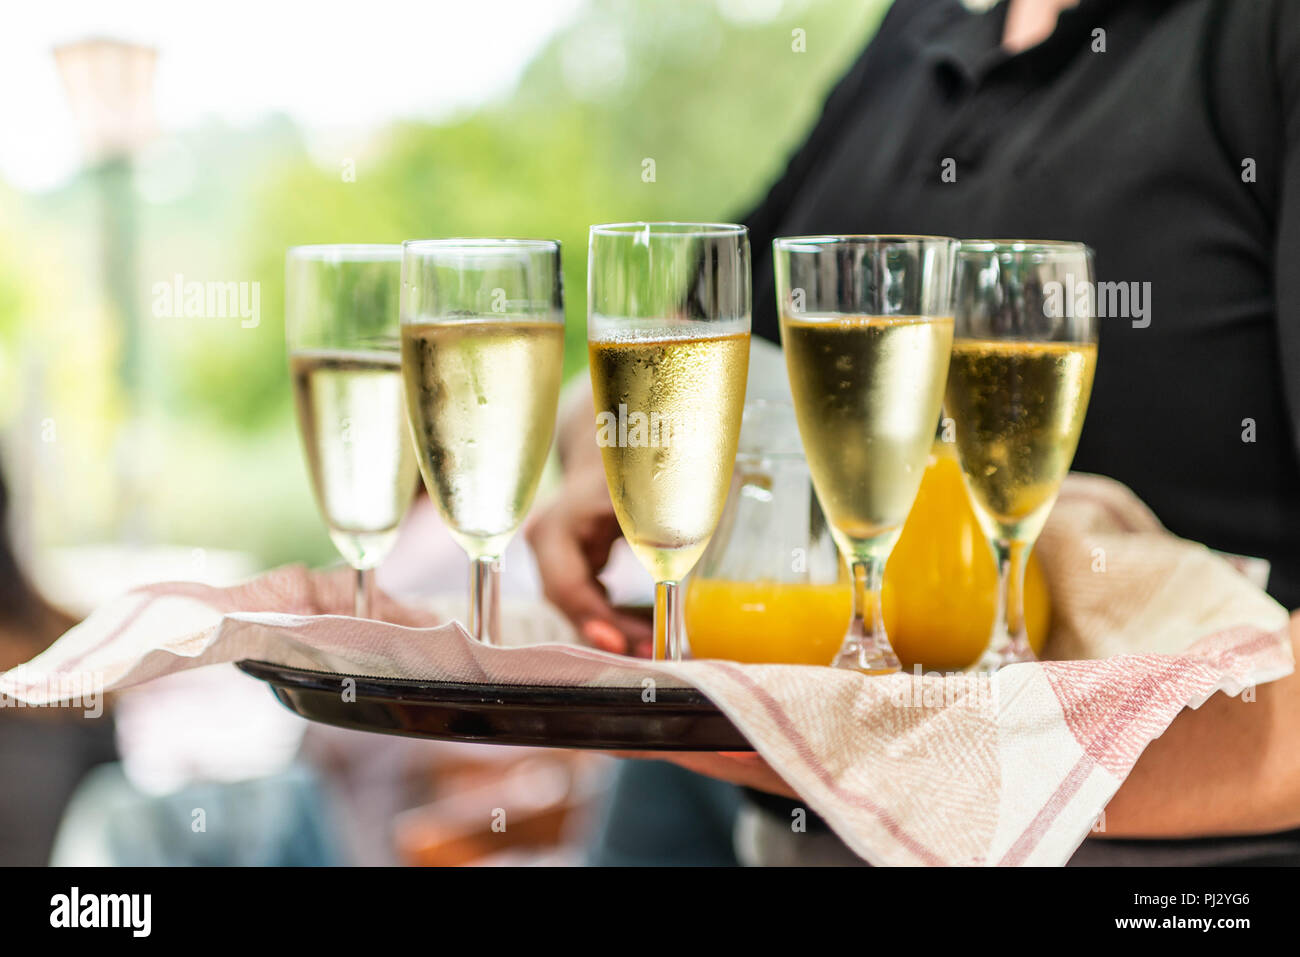 Champagne or sparkling wine in glasses in restaurant served by servant. - Stock Image